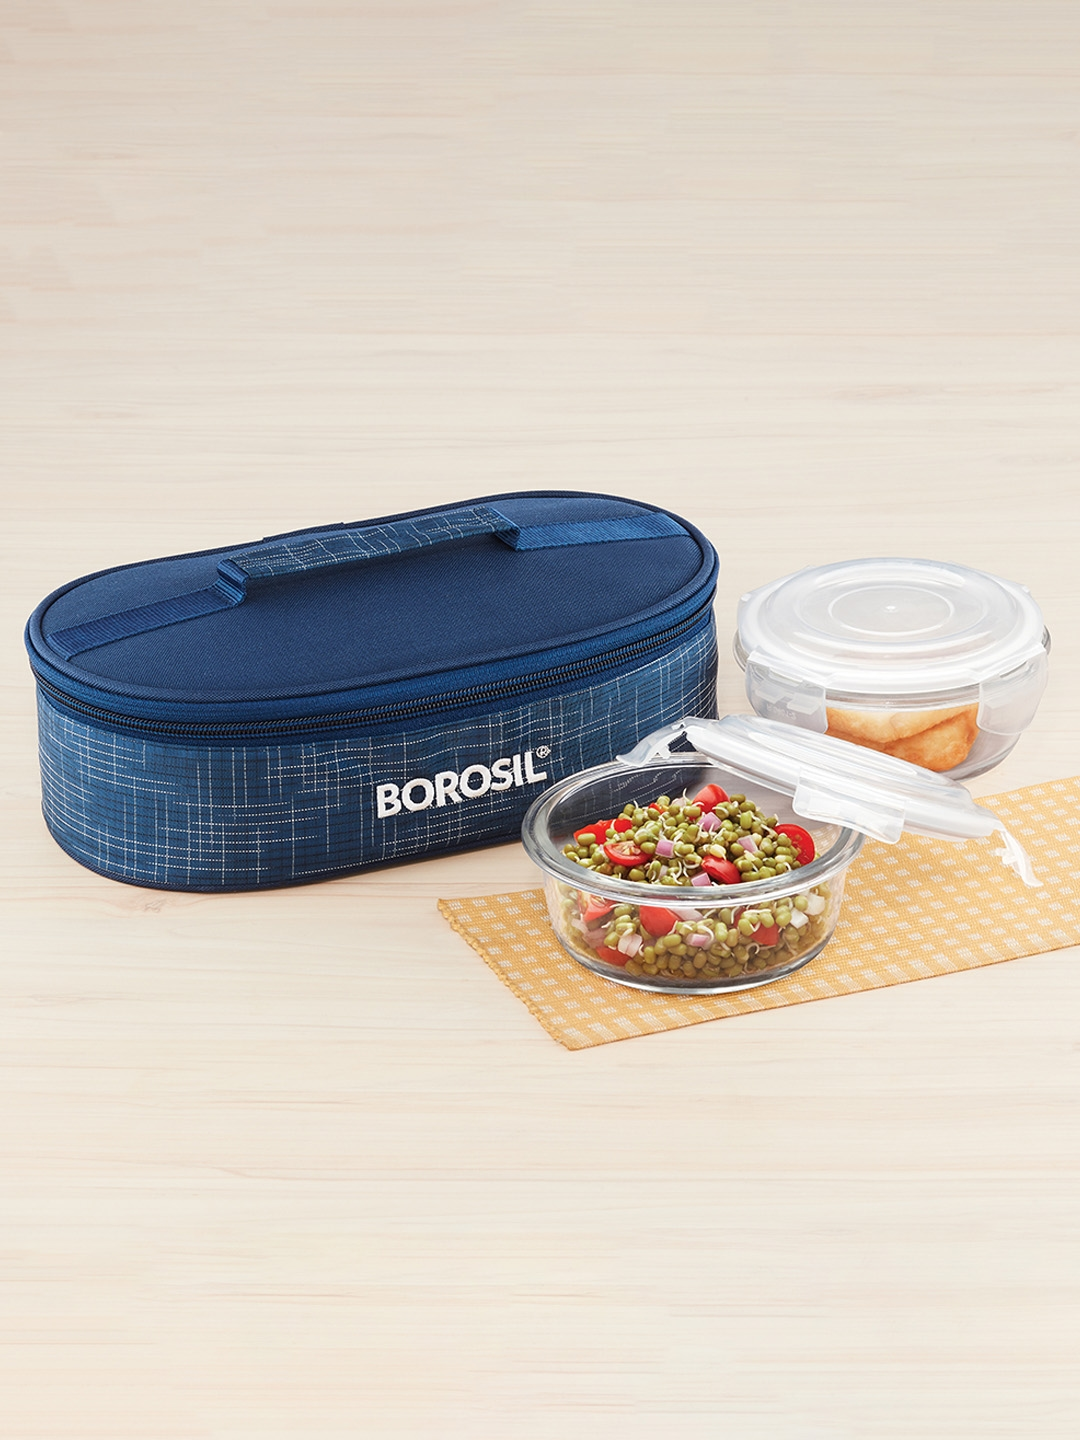 BOROSIL Set Of 2 Blue   Transparent Borosilicate Glass Round Containers Lunch Box With Bag